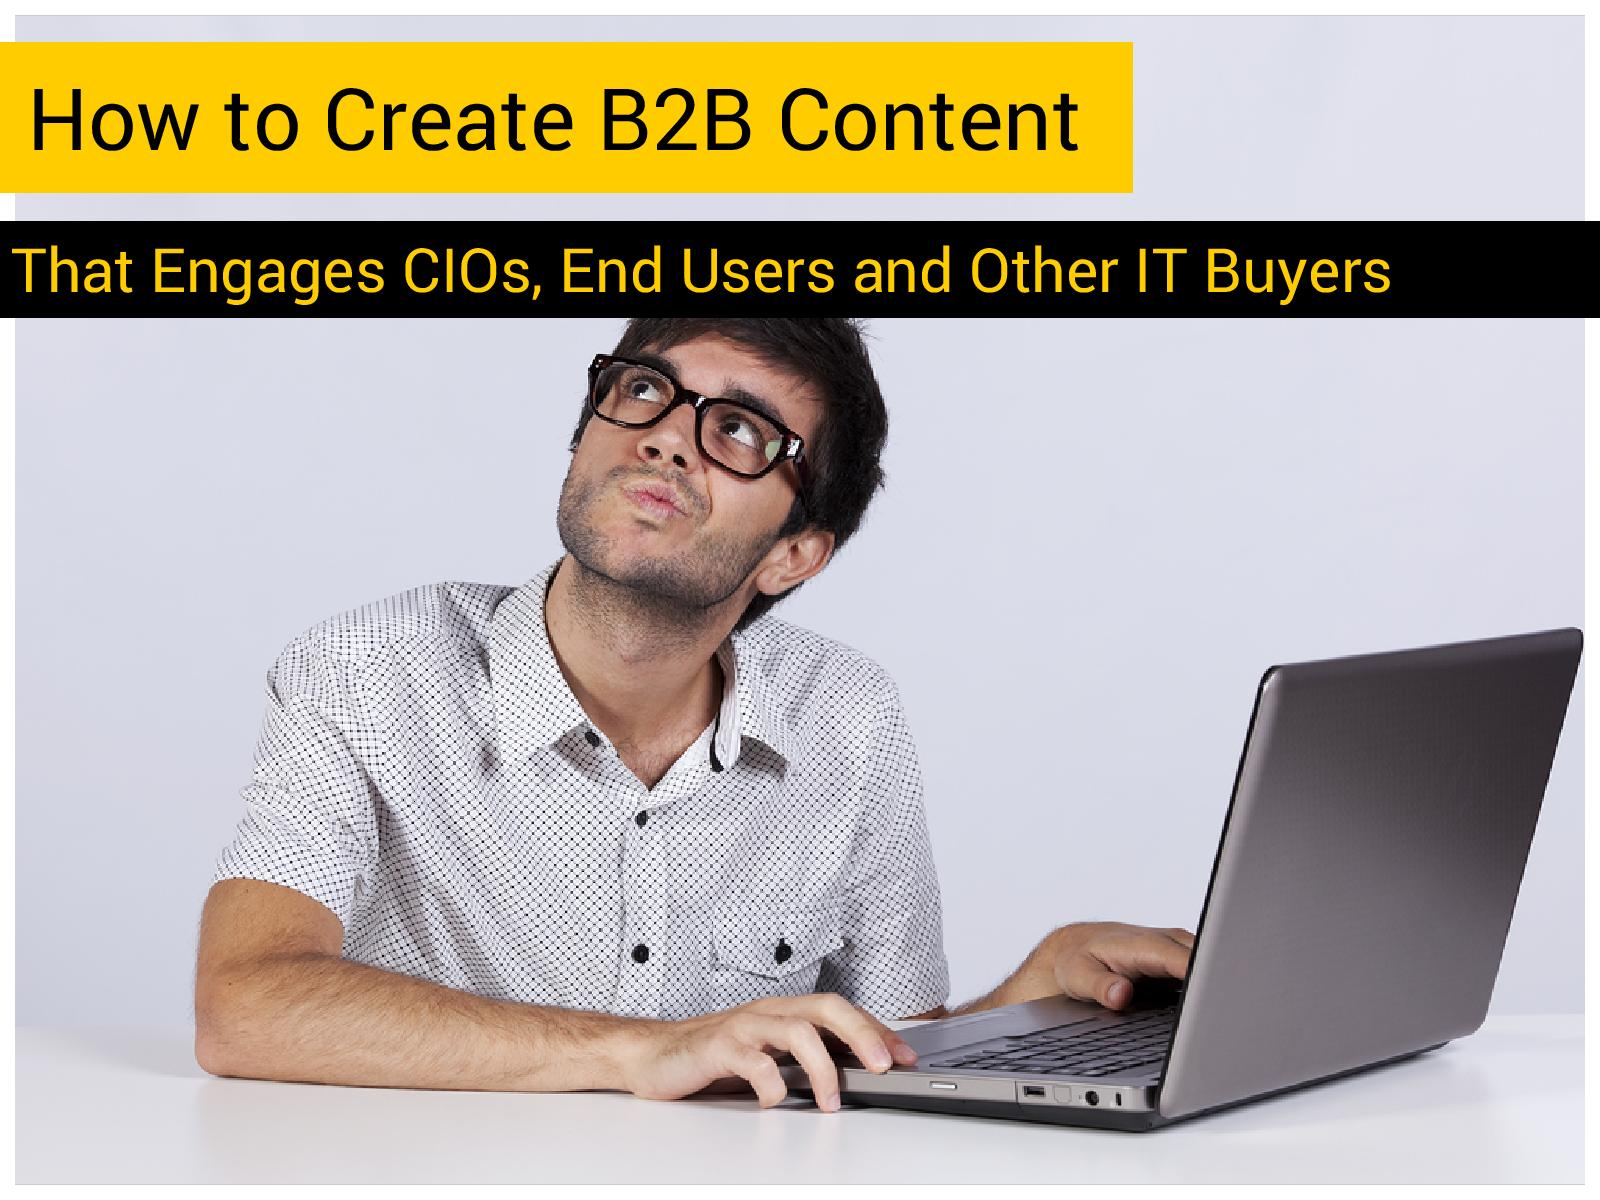 How to Create B2B Content that Engages IT Buyers image